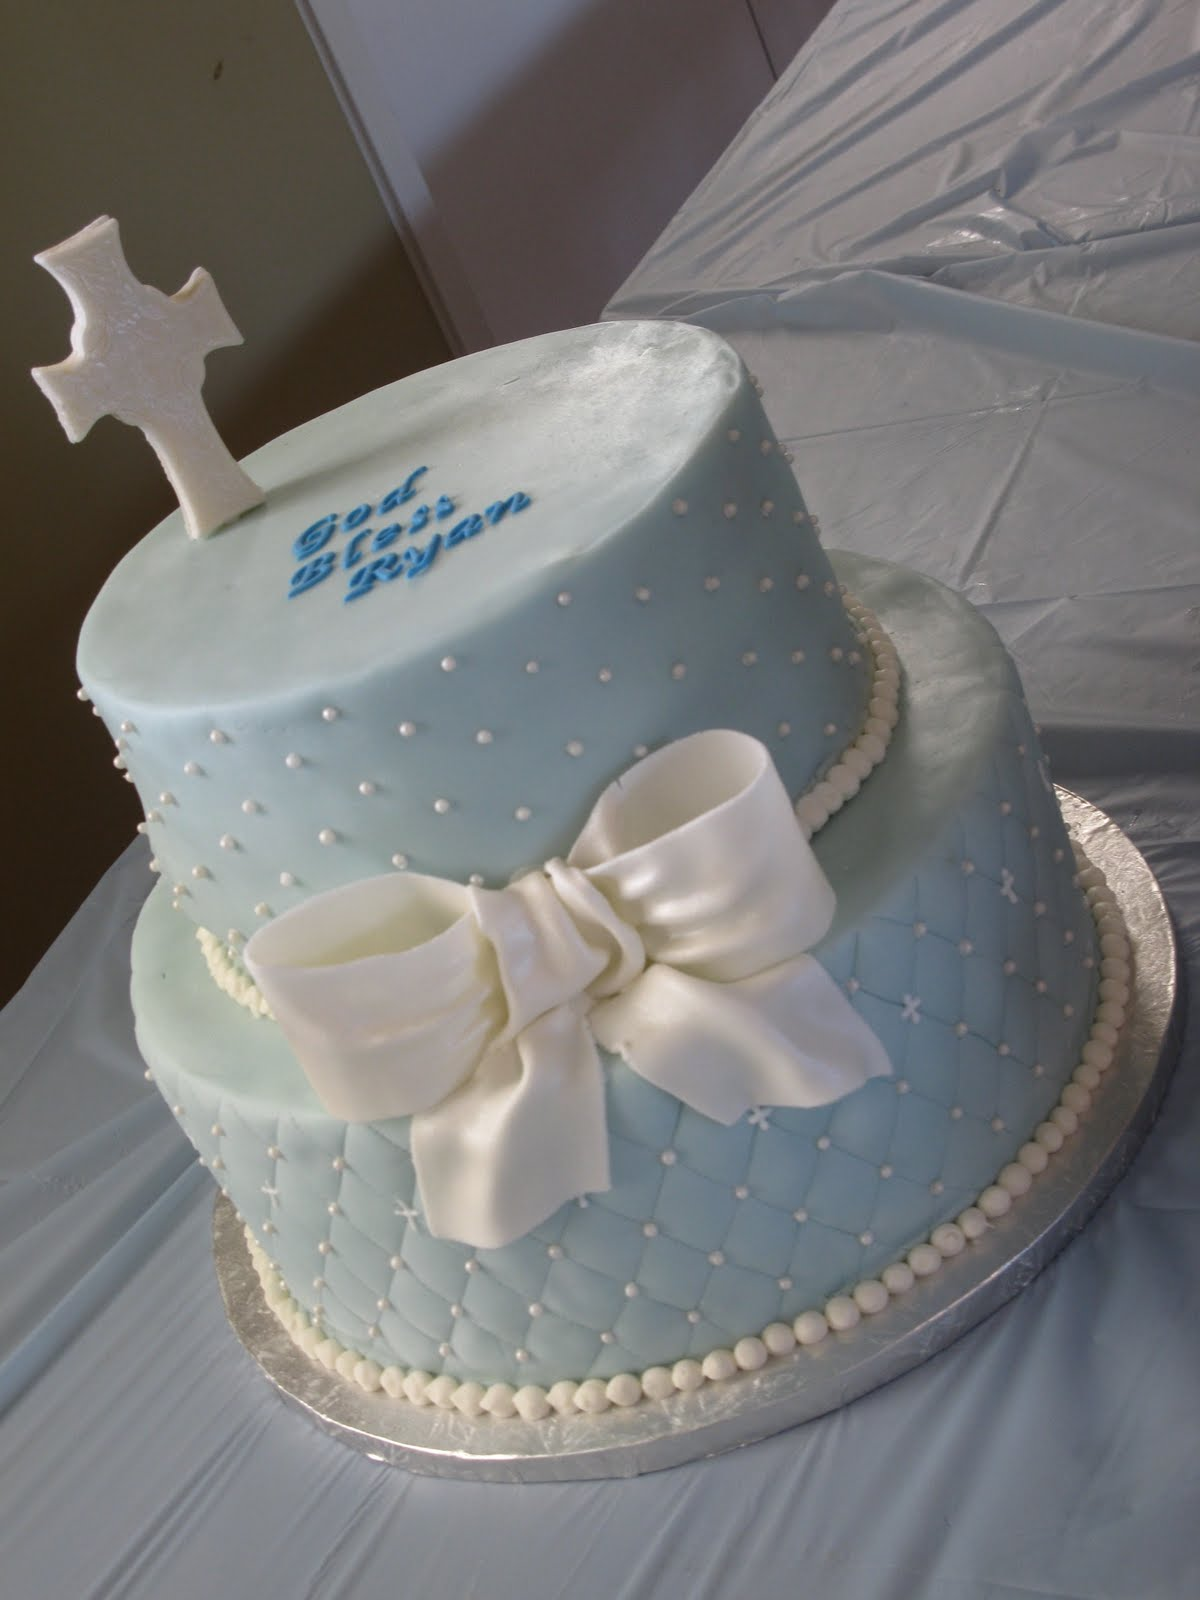 Icing Cake Design For Christening : Creations by Barbara: Baptism Cake